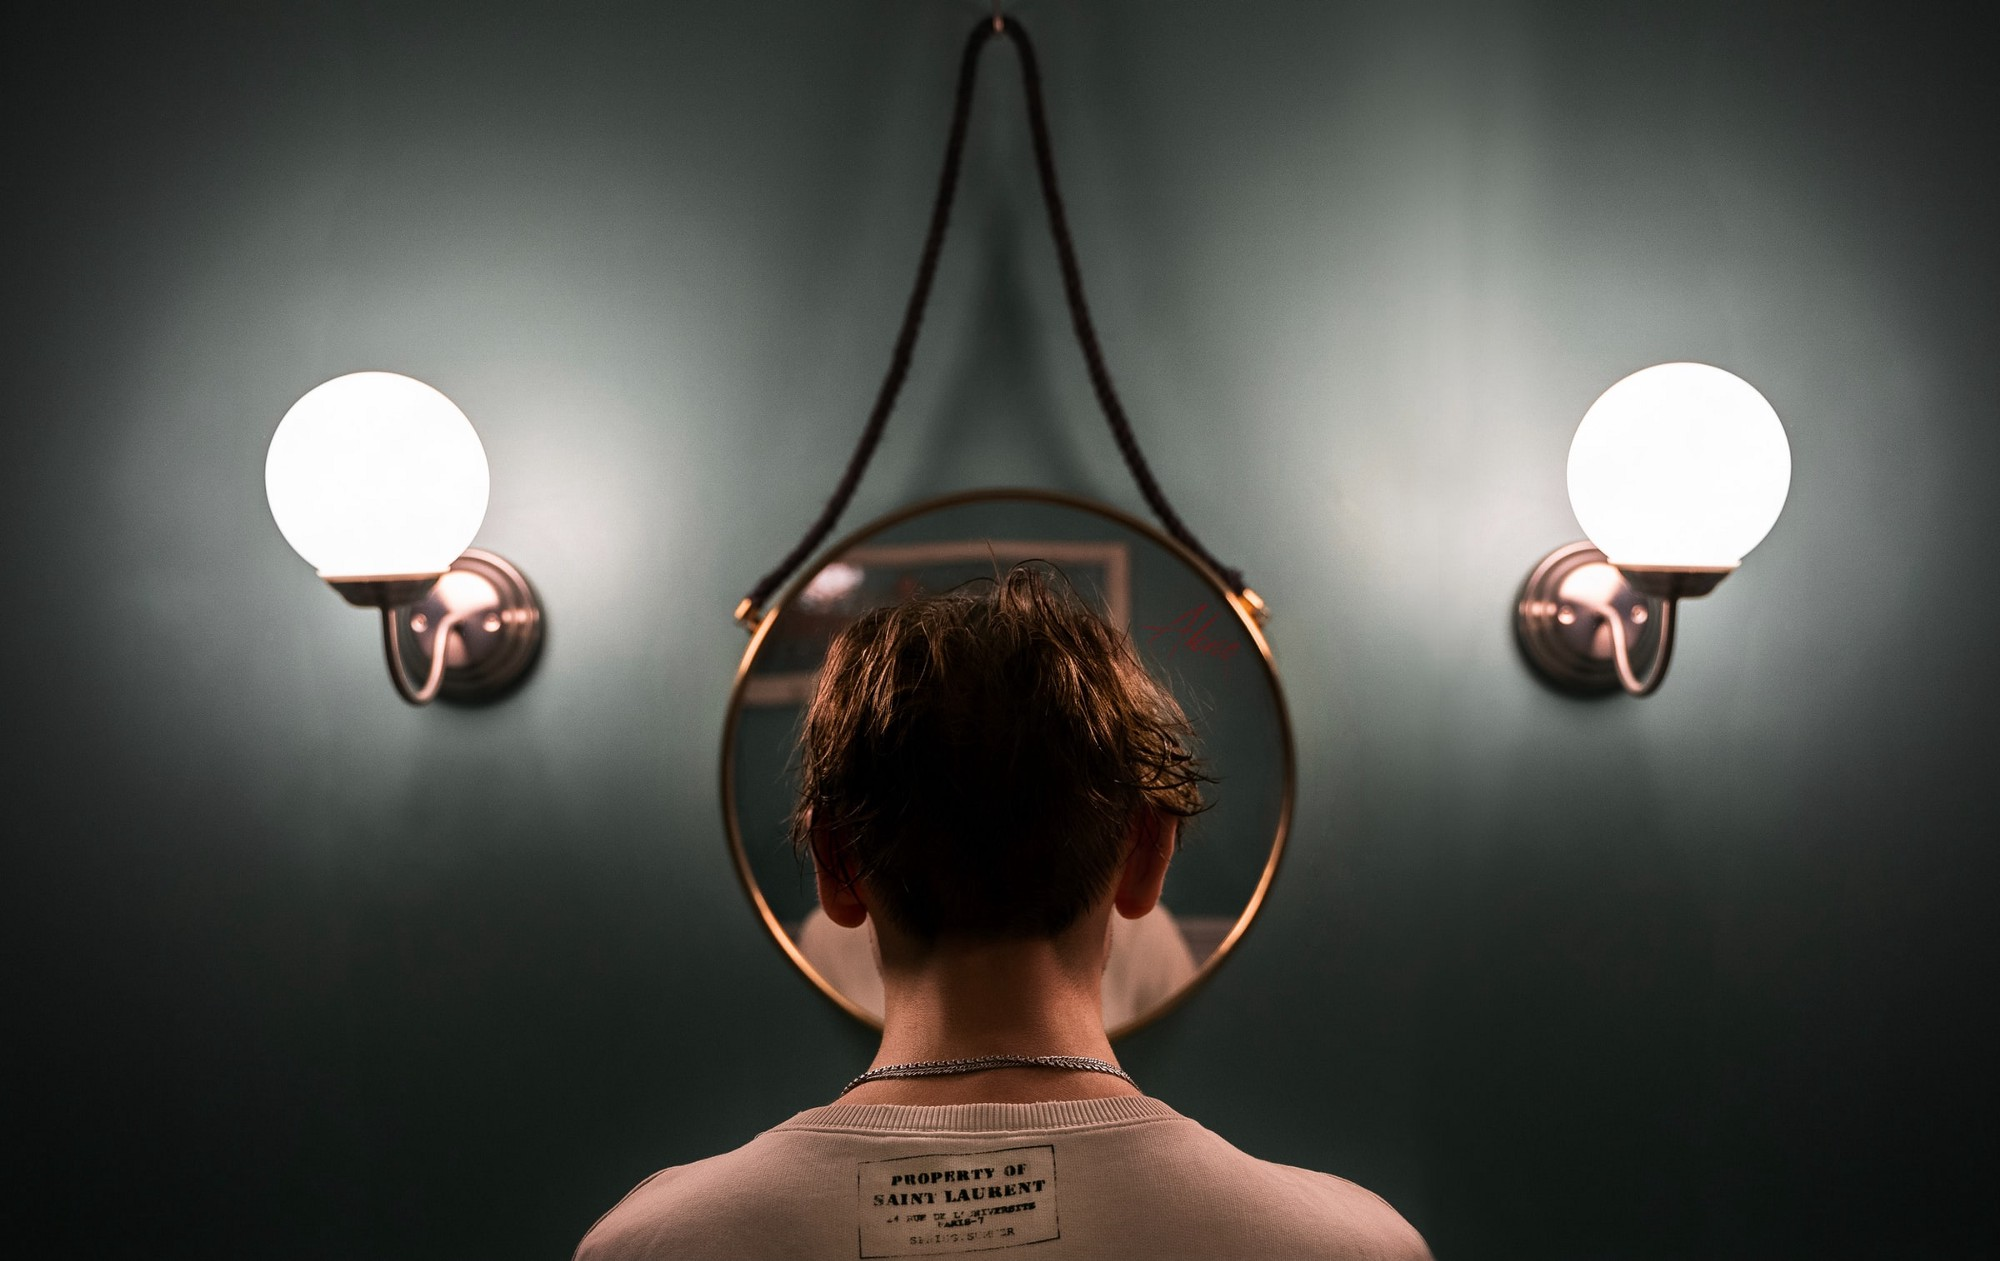 Boy standing in front of a mirror